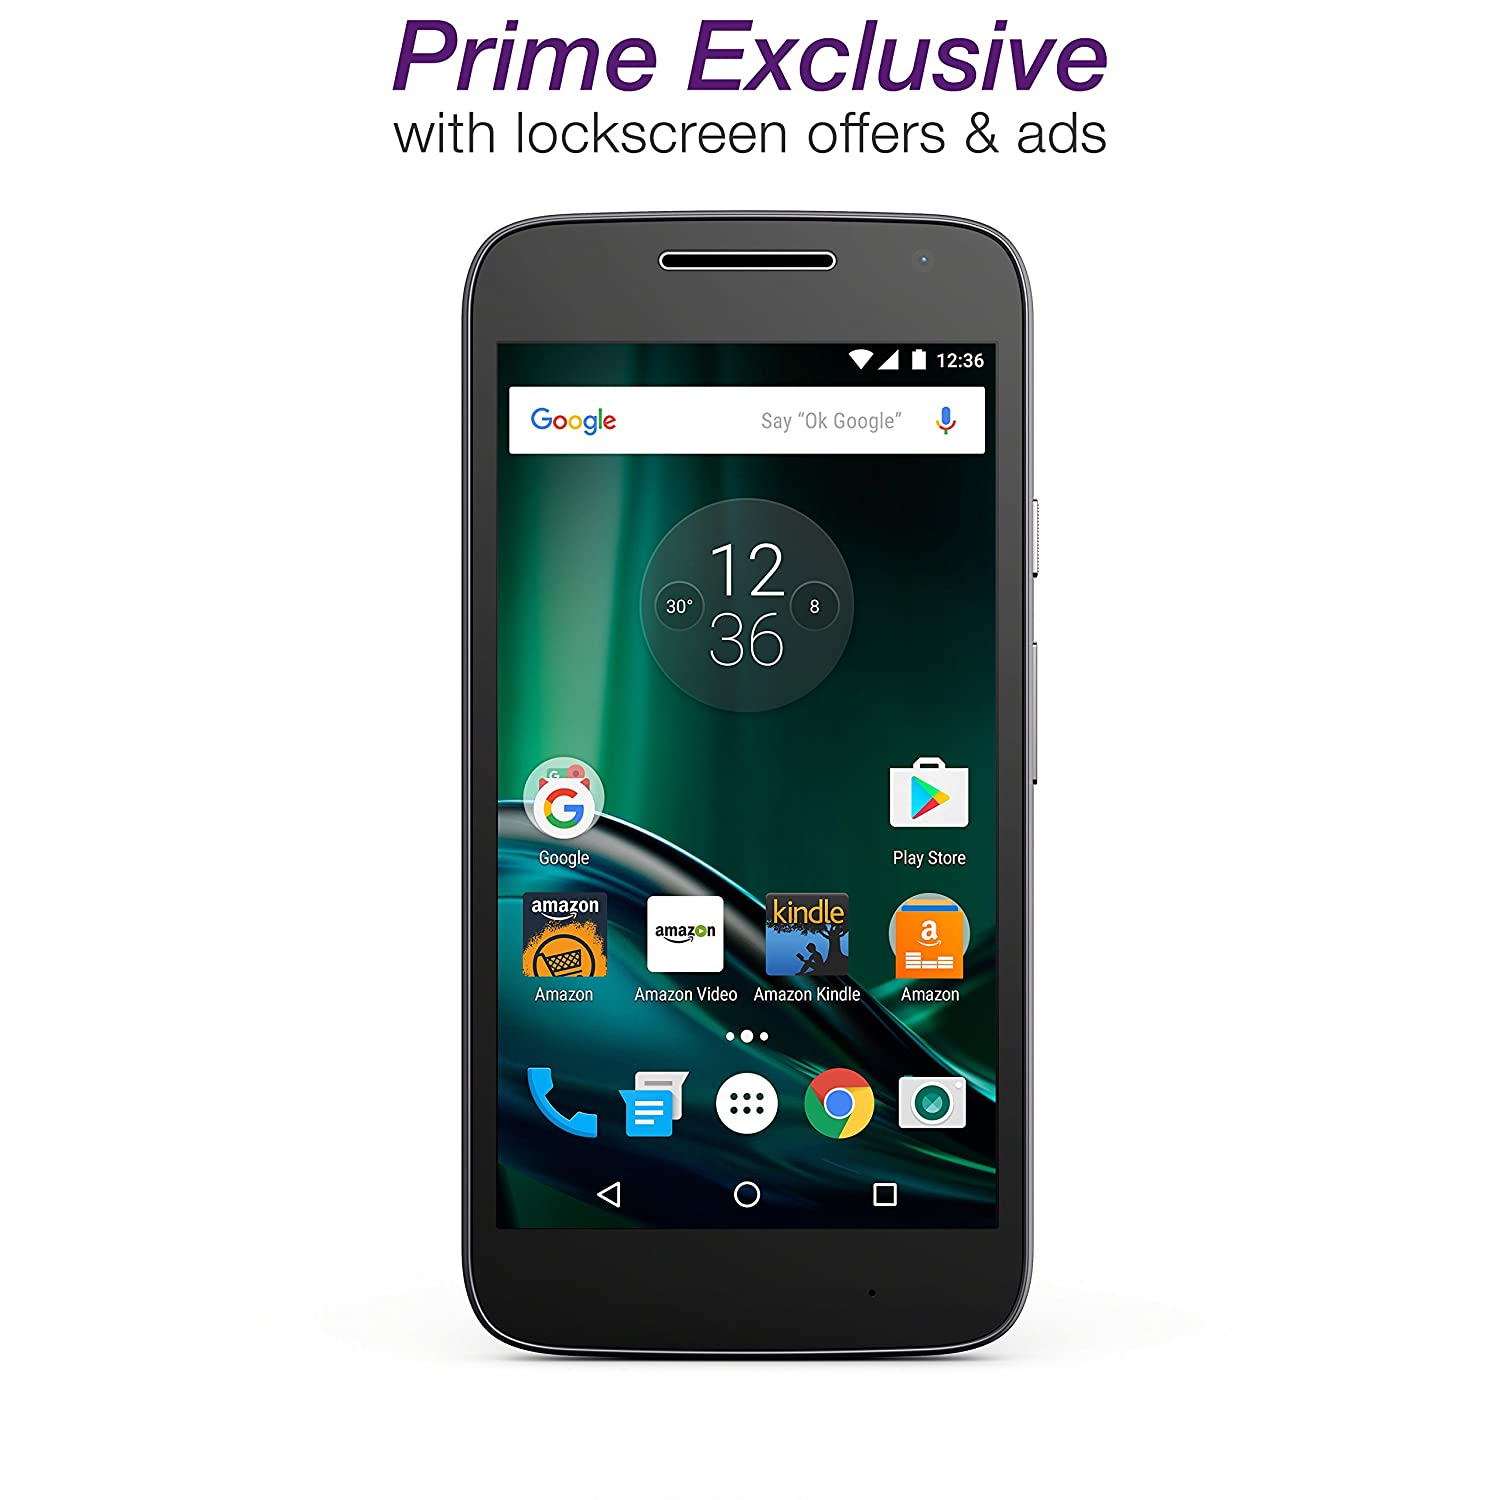 Amazon prime membership phone number - Amazon Com Moto G Play 4th Gen Black 16 Gb Unlocked Prime Exclusive With Lockscreen Offers Ads Cell Phones Accessories